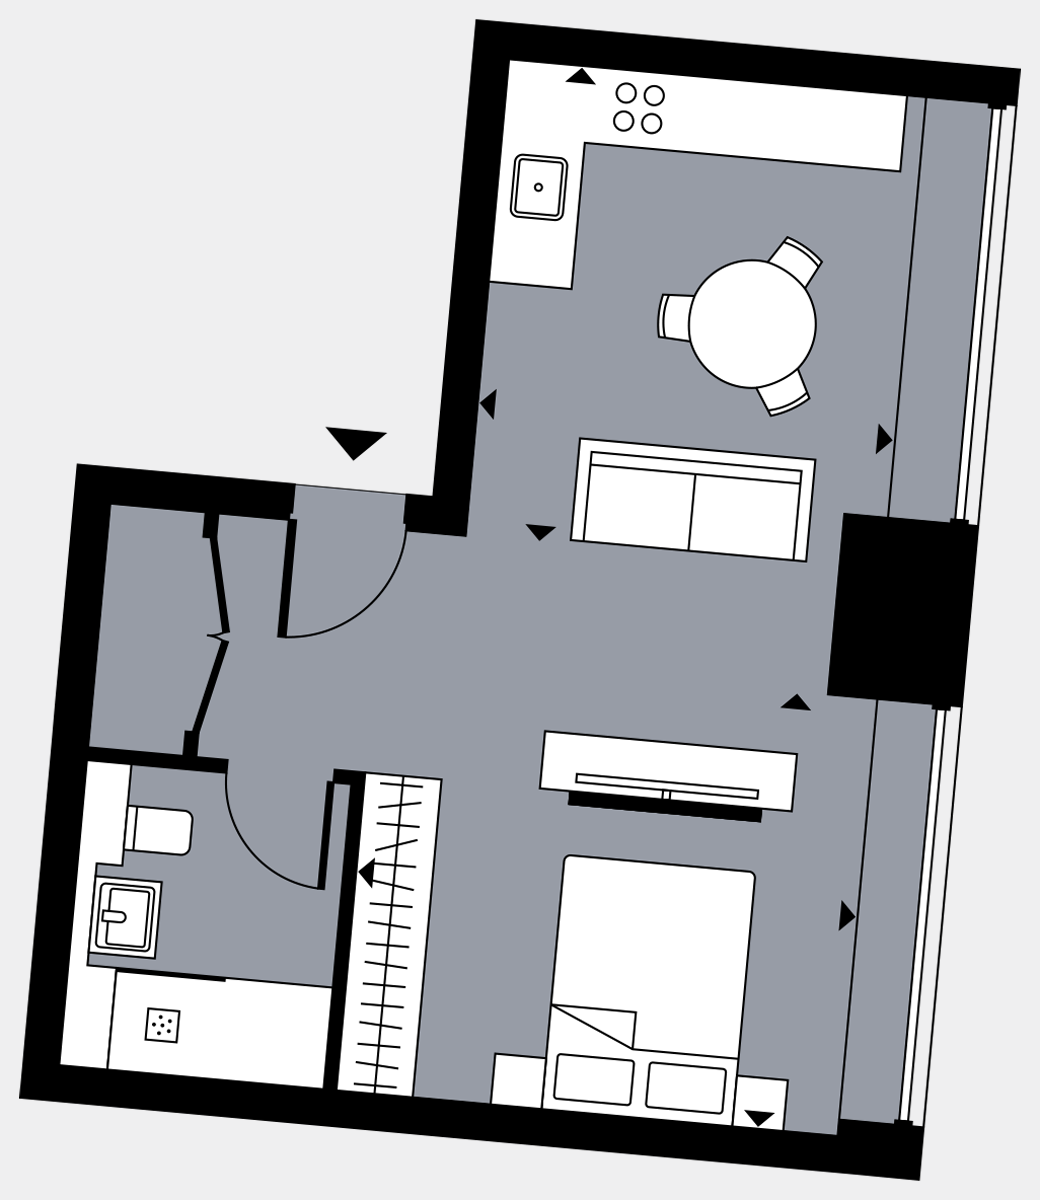 Brigade Court London SE1 Apartment floorplan - L3 27 Davies House